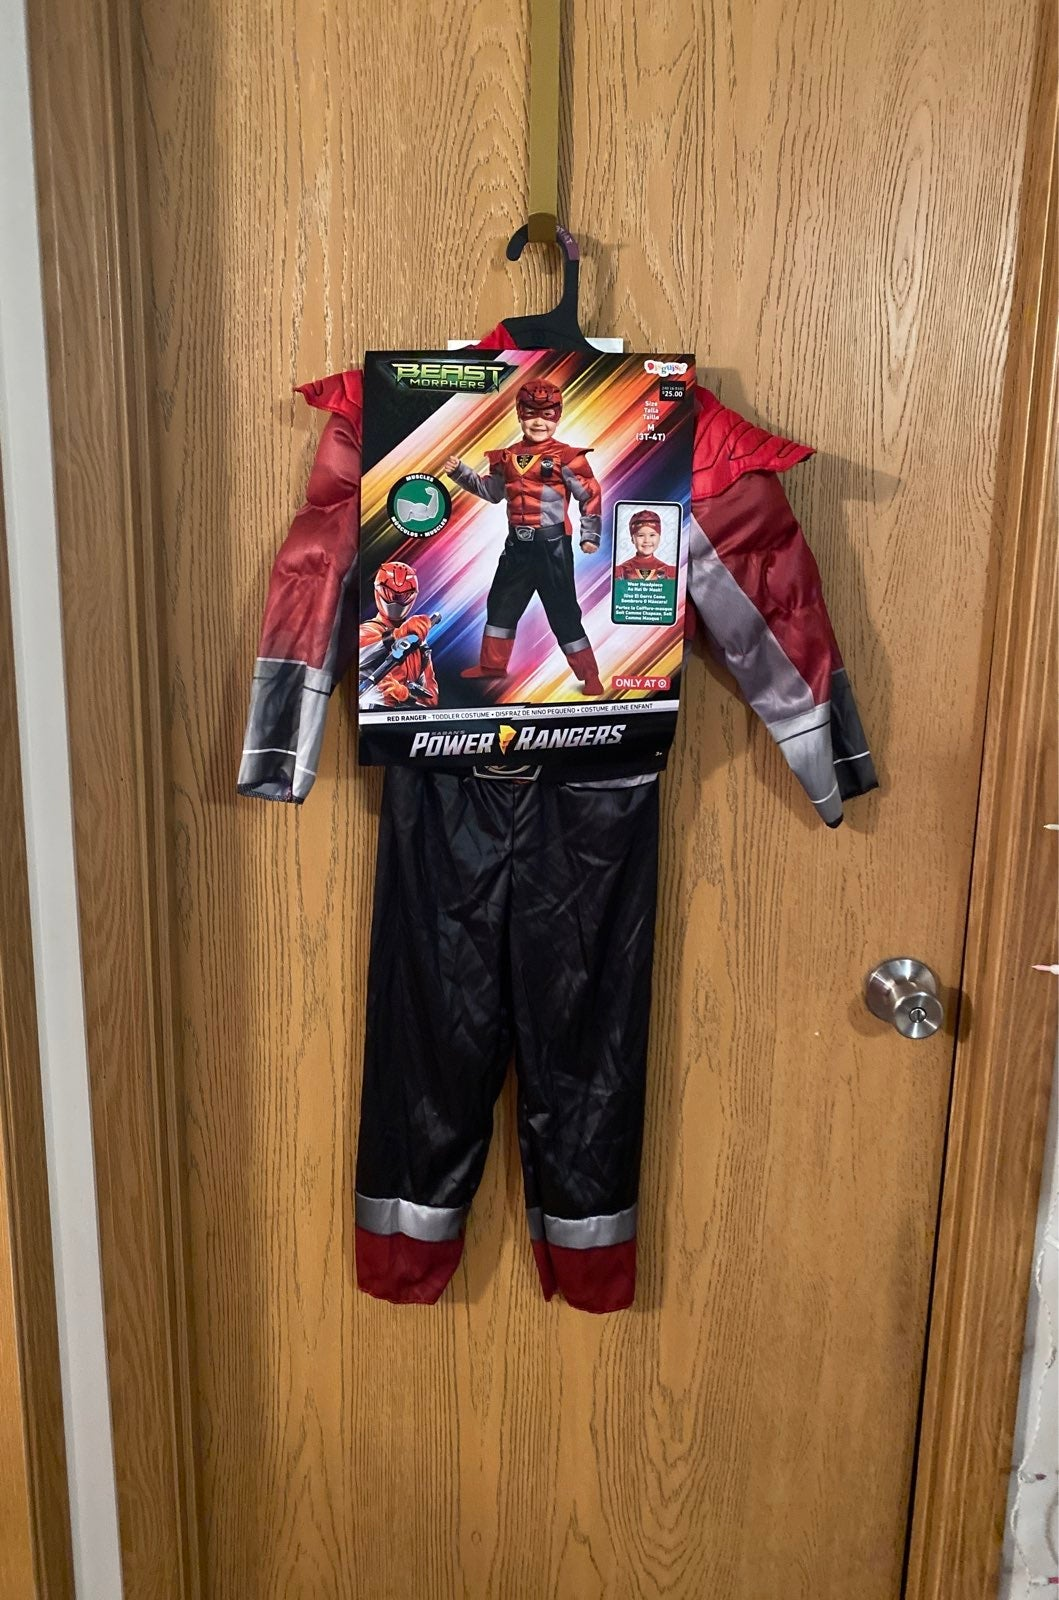 Power Rangers red toddler costume 3T-4T